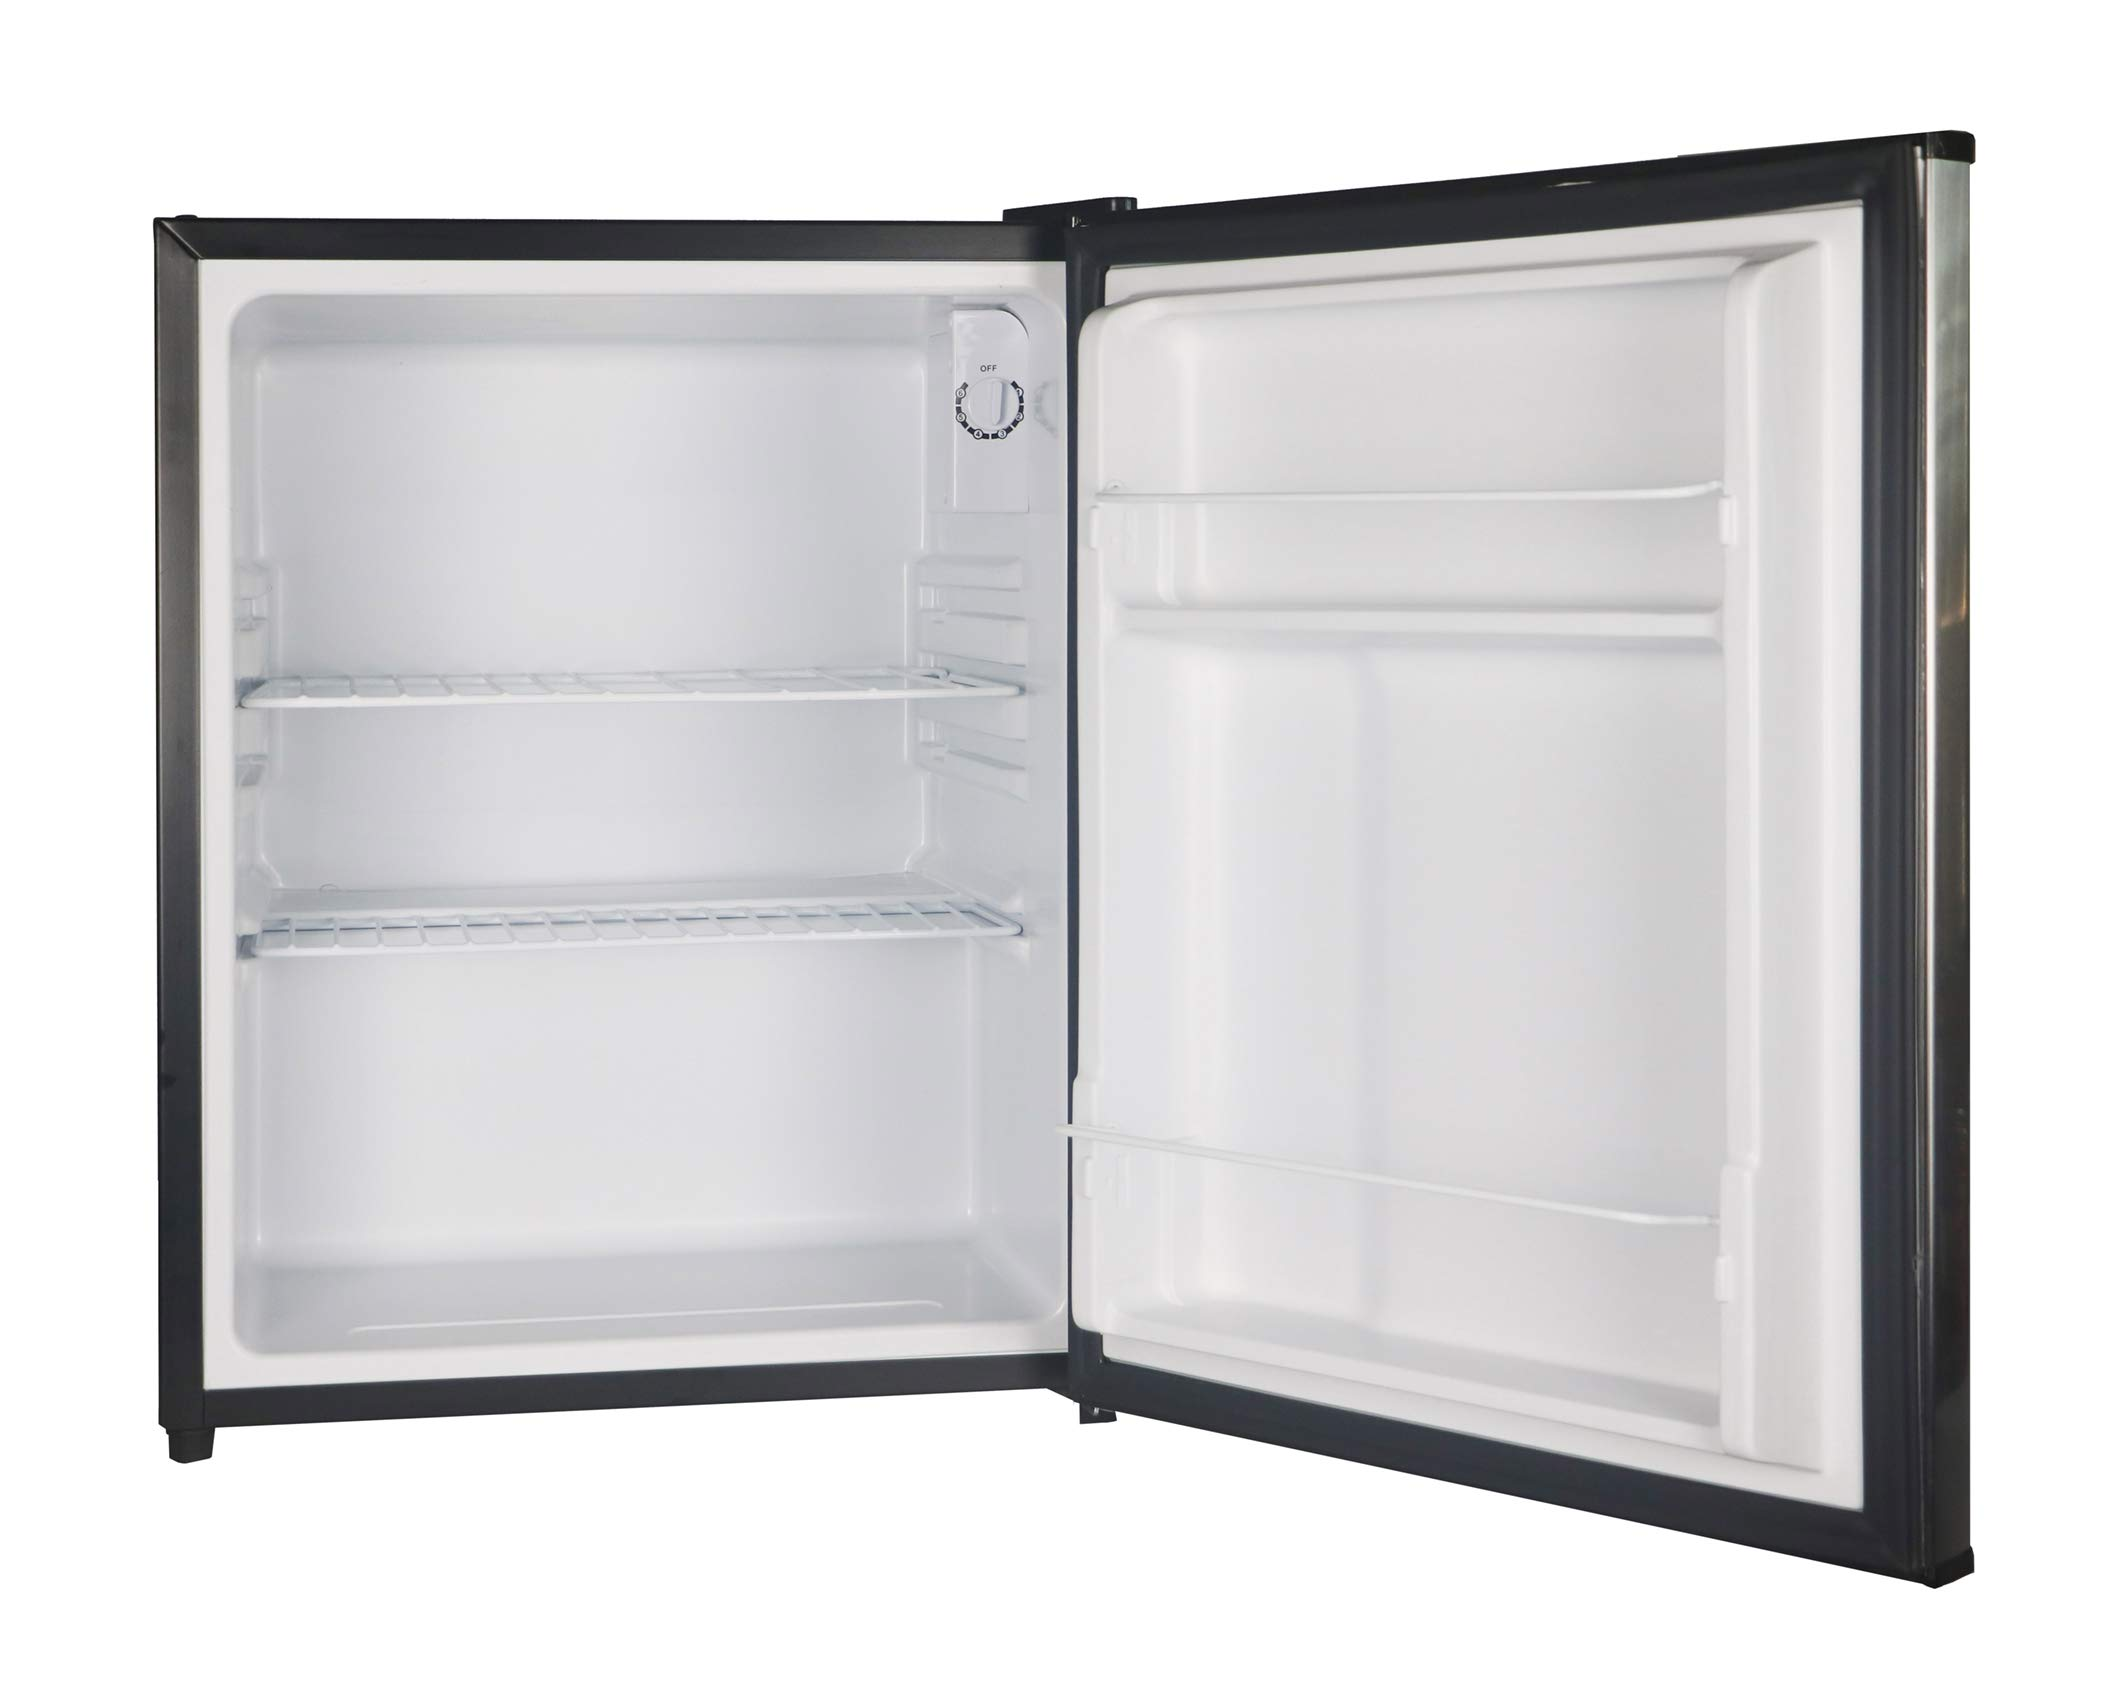 Magic Chef MCAR240SE2 Energy Star Stainless Steel Door 2.4 Cu. Ft. Mini All-Refrigerator by Magic Chef (Image #3)